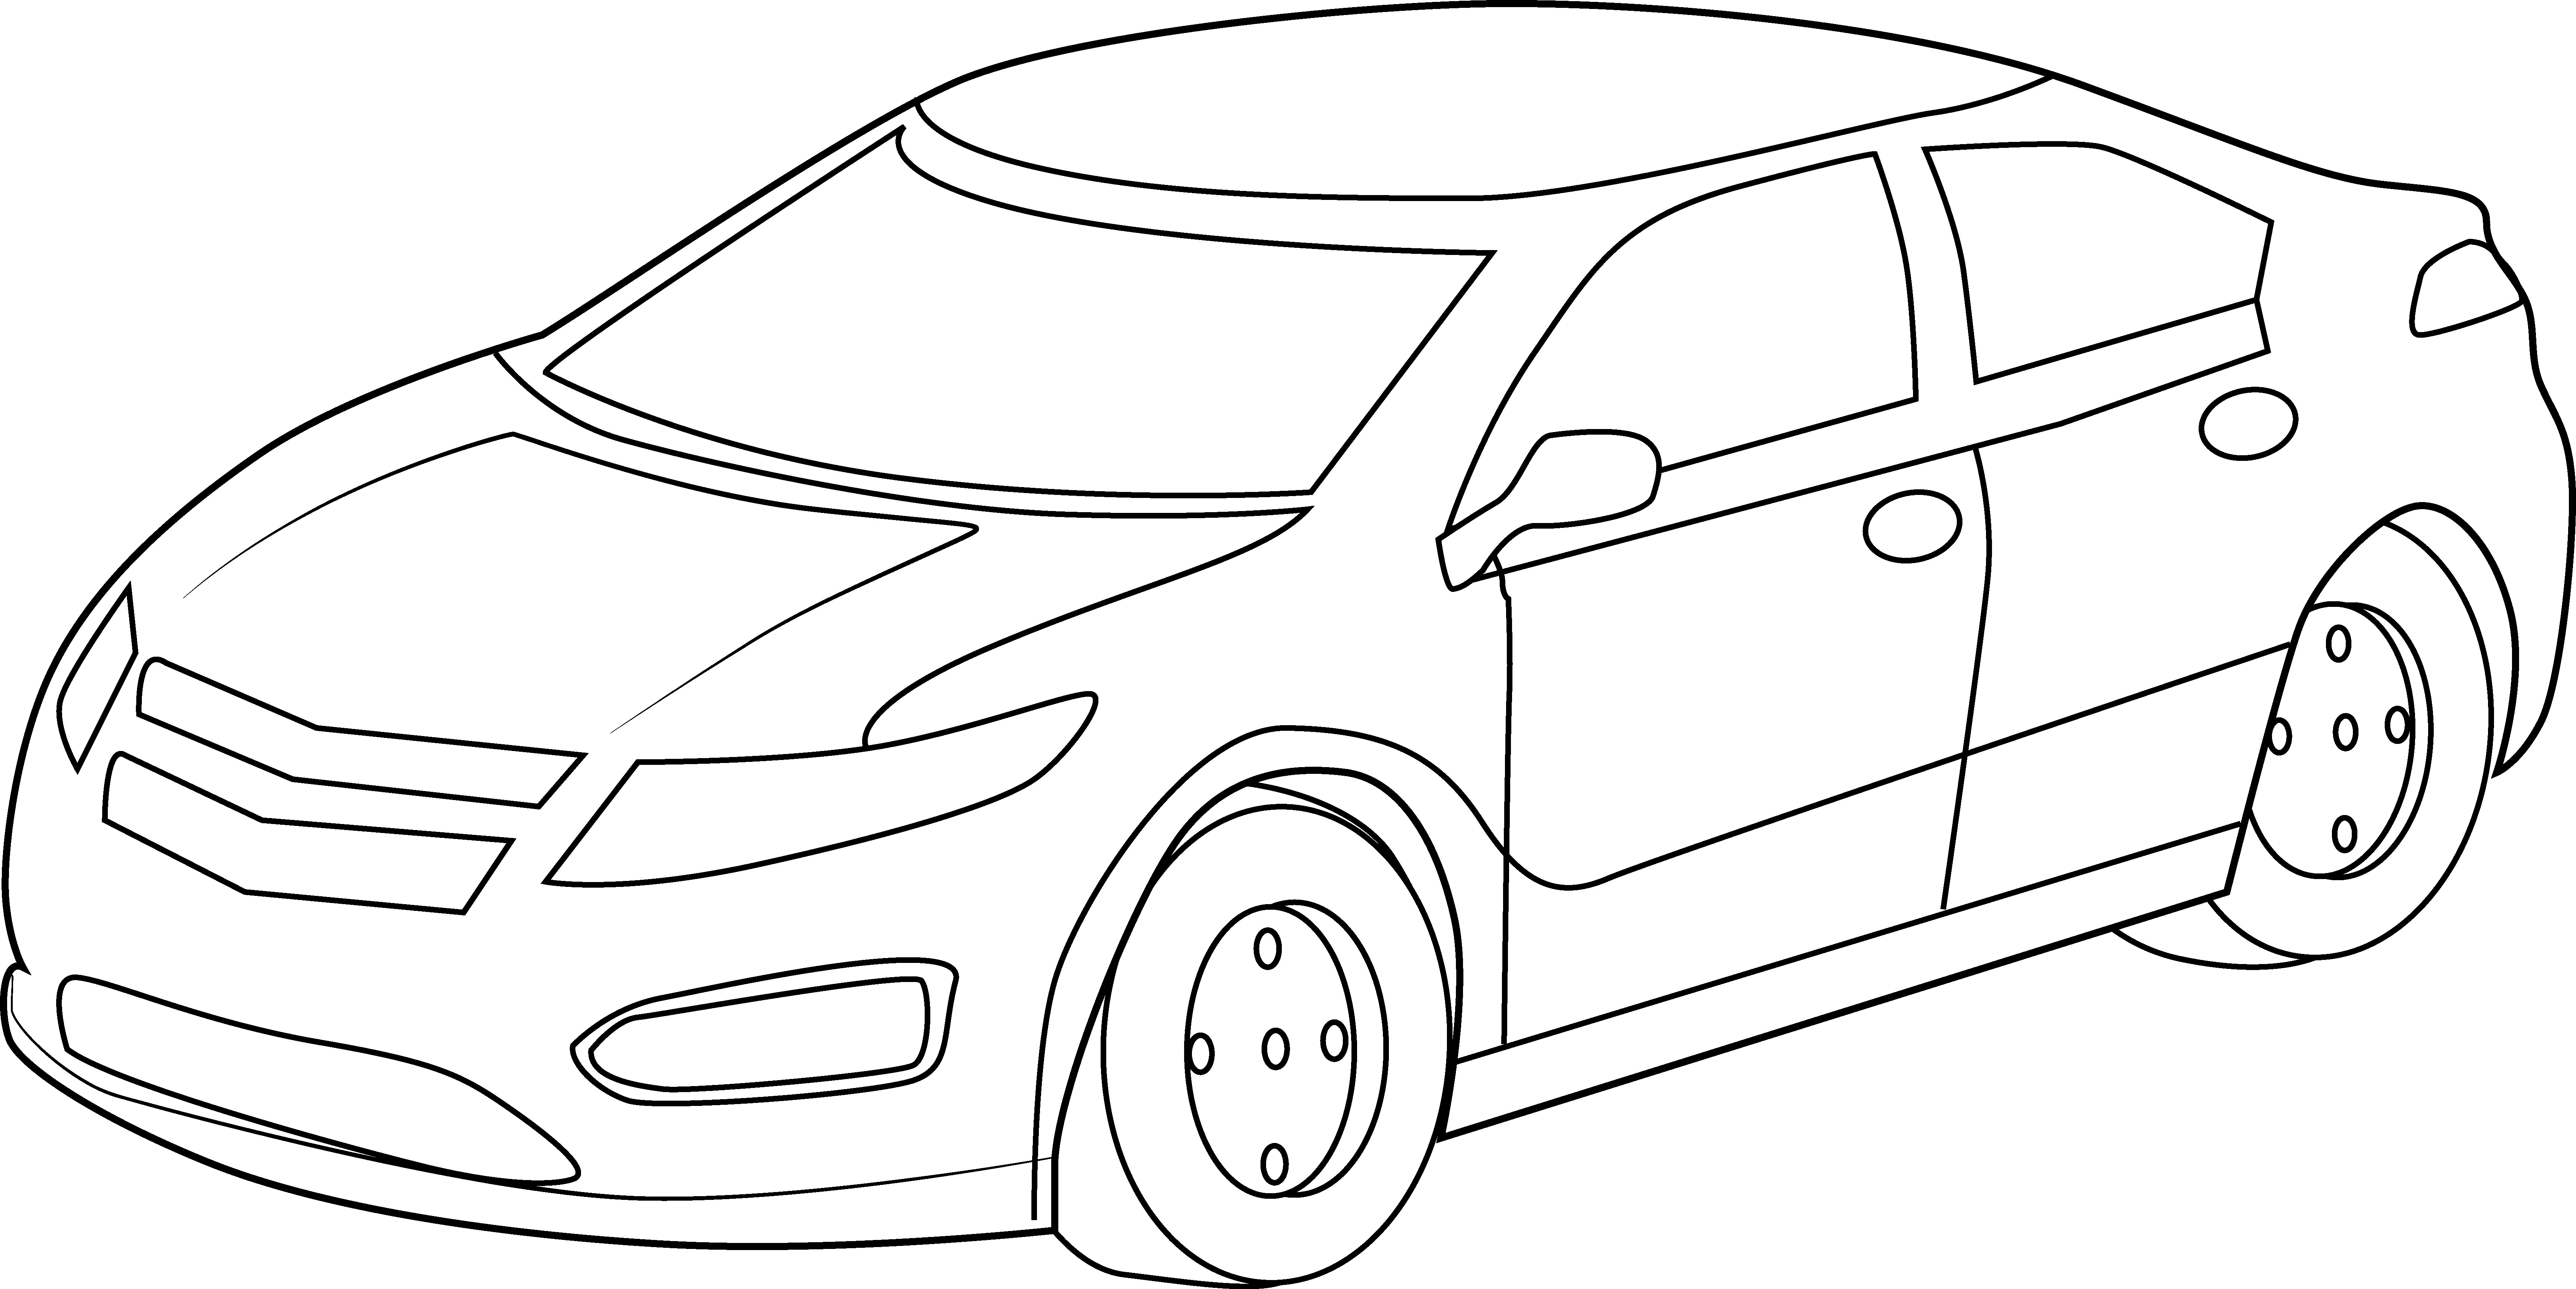 6881x3443 Simple Race Car Coloring Pages New Car Coloring Pages Simple Car